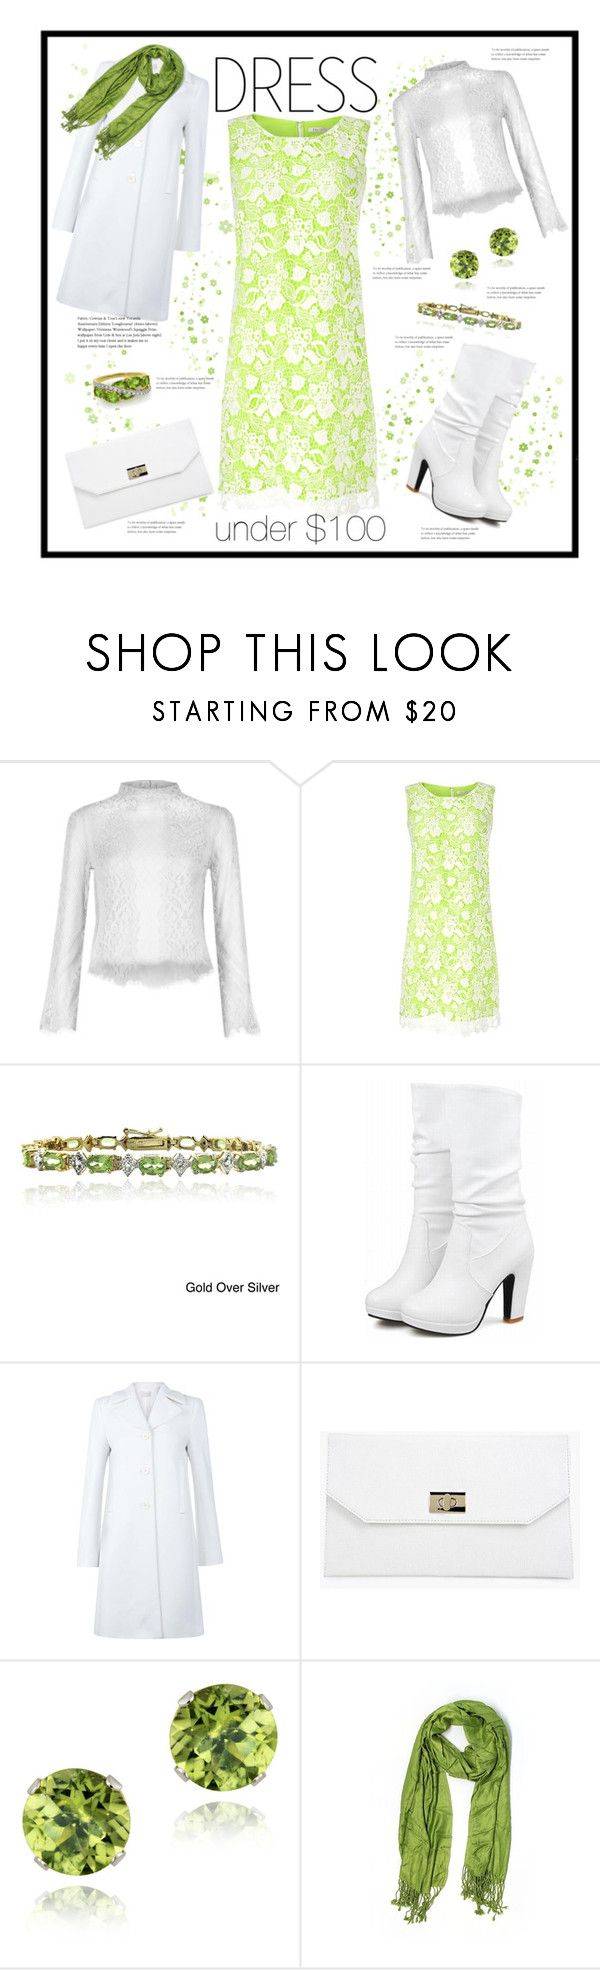 """Winter Dresses Under $100: Greenery"" by susan0219 ❤ liked on Polyvore featuring River Island, Precis Petite, Glitzy Rocks, Hobbs, Boohoo, Nordstrom and under100"